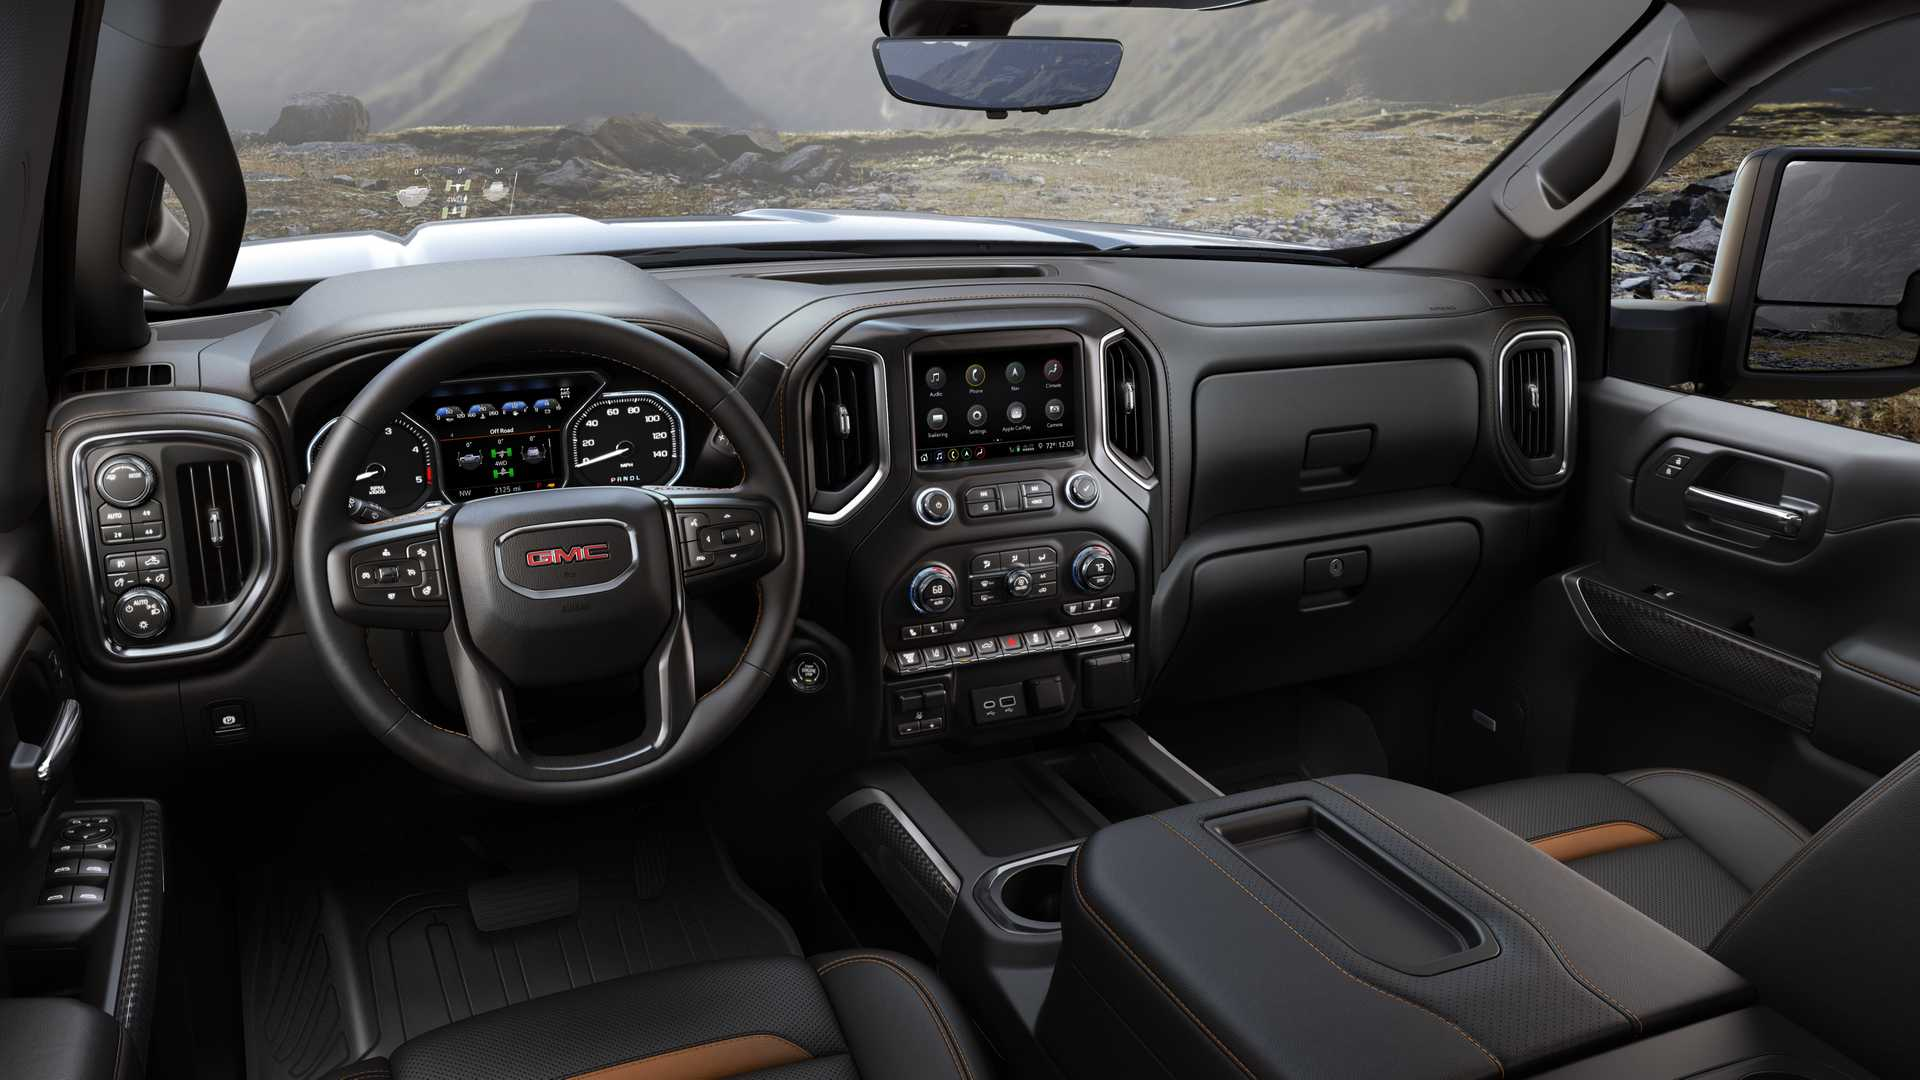 2021 Gmc Sierra Interior Release Date and Concept